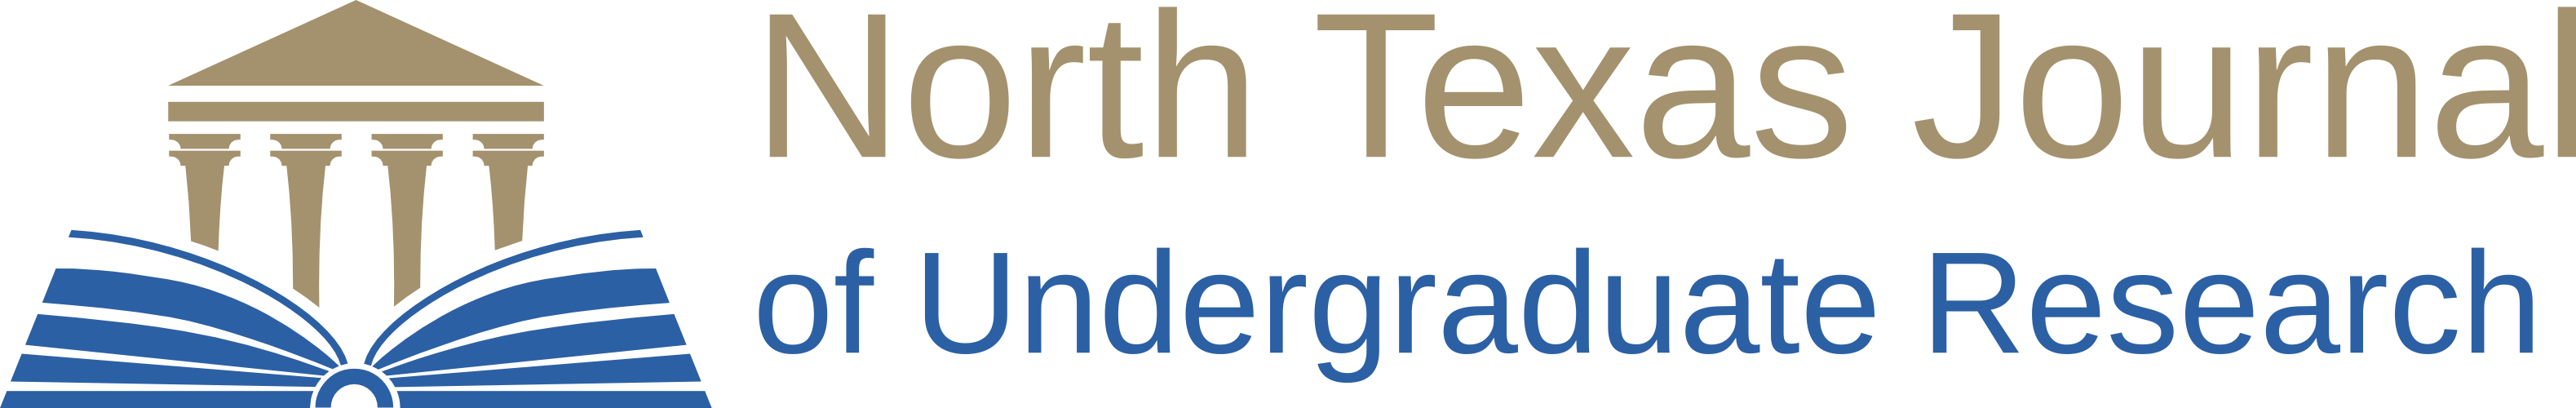 North Texas Journal of Undergradaute Research logo, featuring Greek-style building atop the pages of an open book.